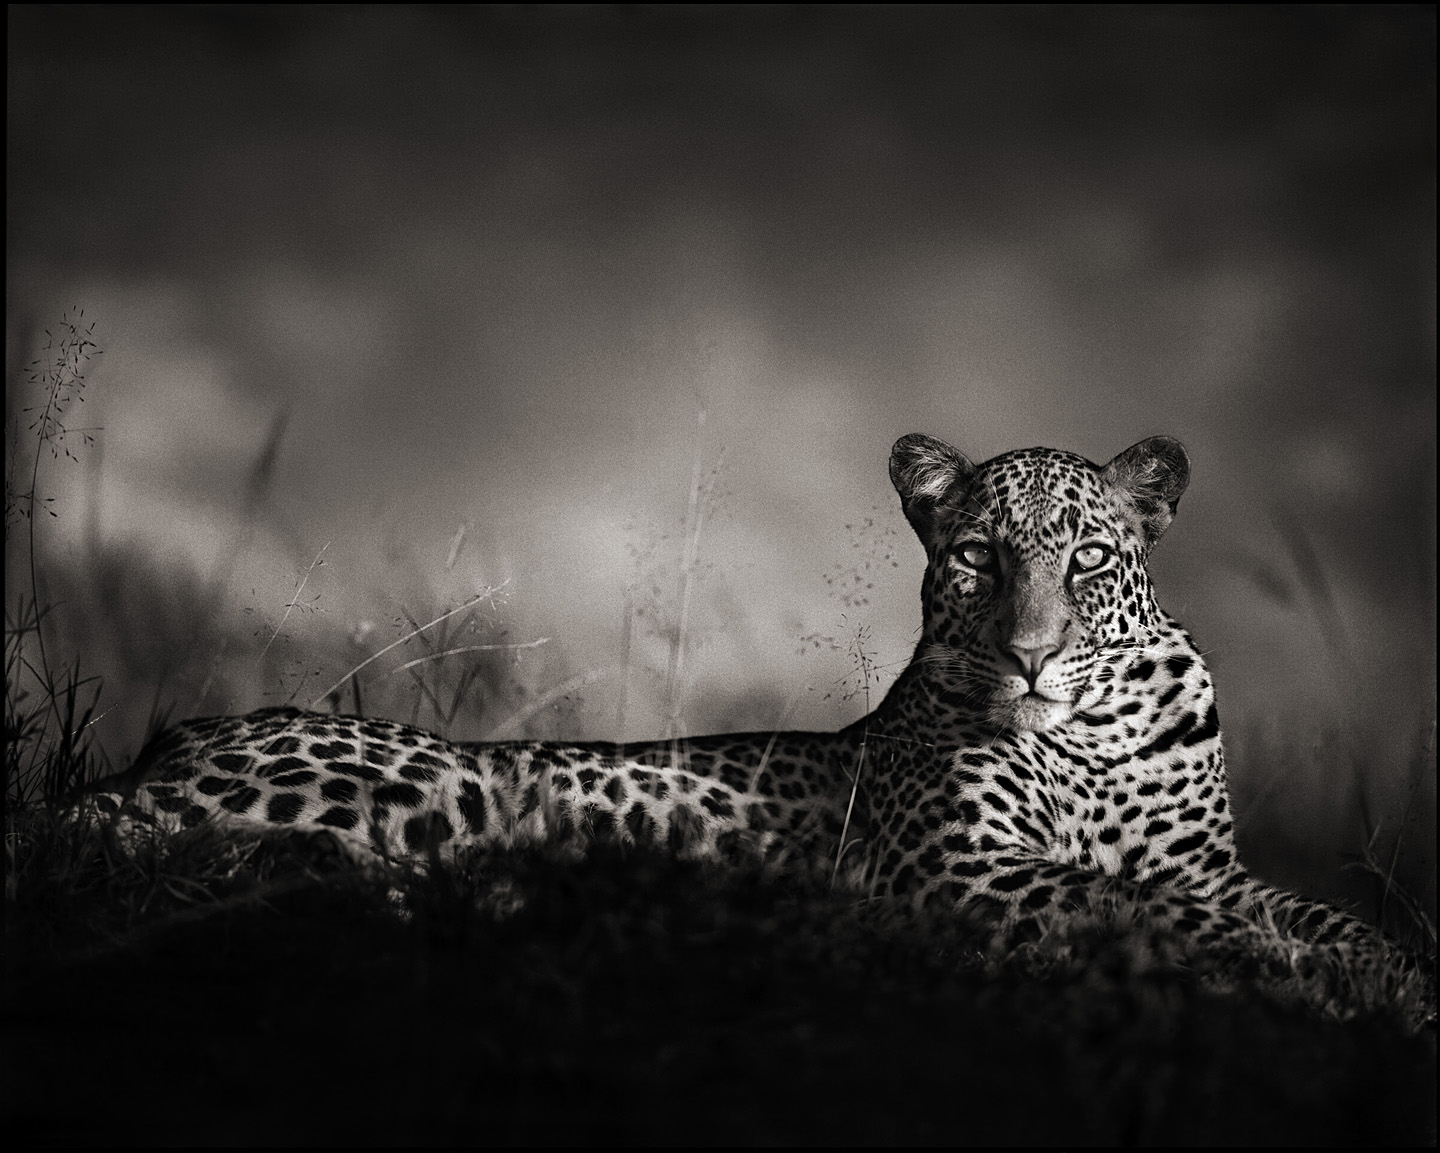 Animals Black And White Elephants 10000 Lions Big Cats: Fine Art PhotographyNick Brandt - Atlas